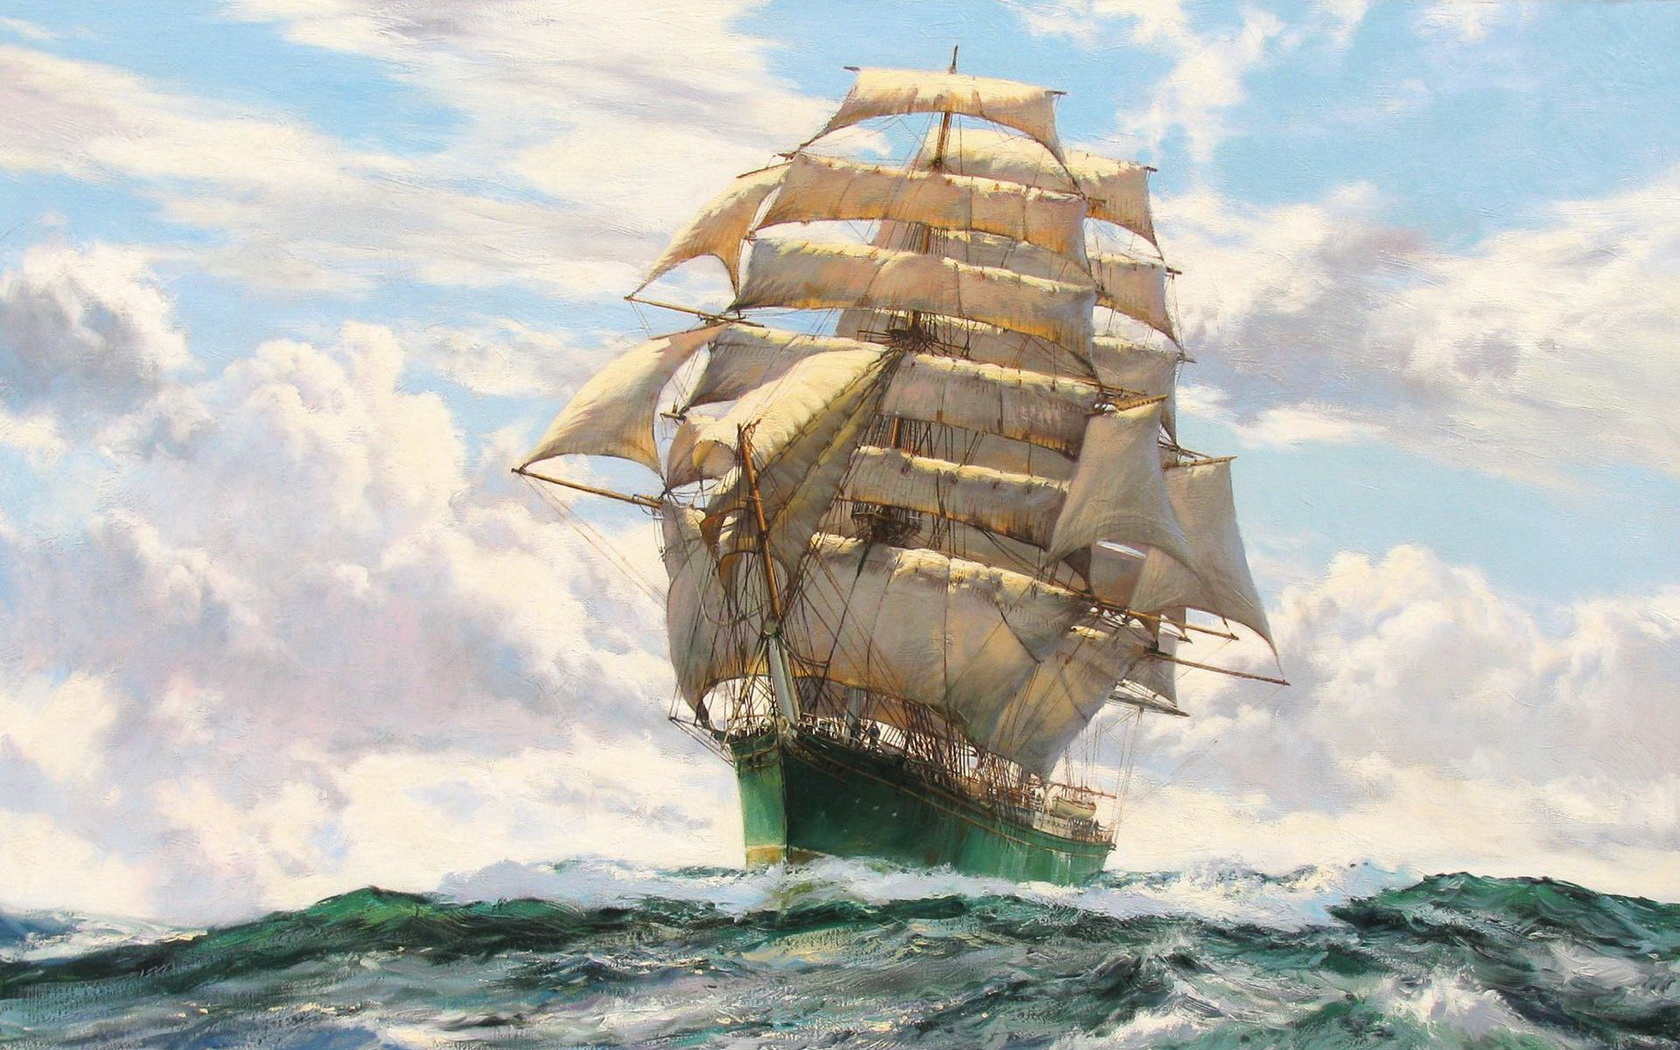 Sailing Ship Computer Wallpapers Desktop Backgrounds 1680x1050 ID 1680x1050